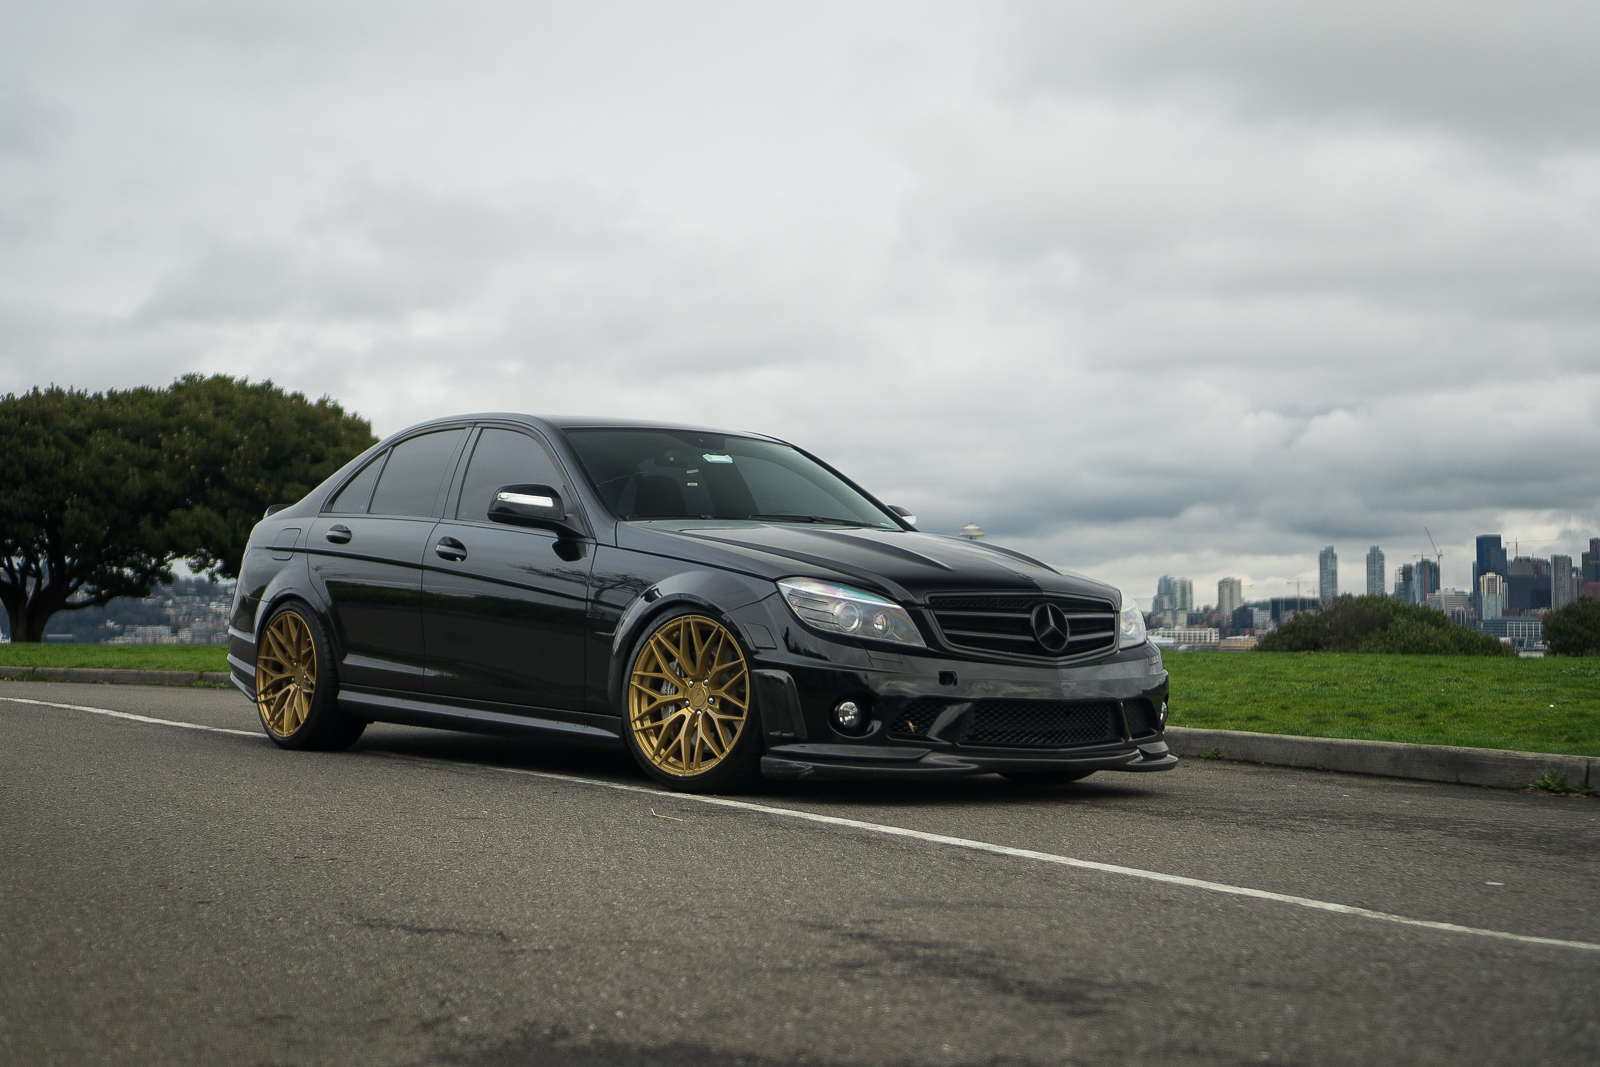 Mercedes Benz C63 W204 Black Gold ZF01